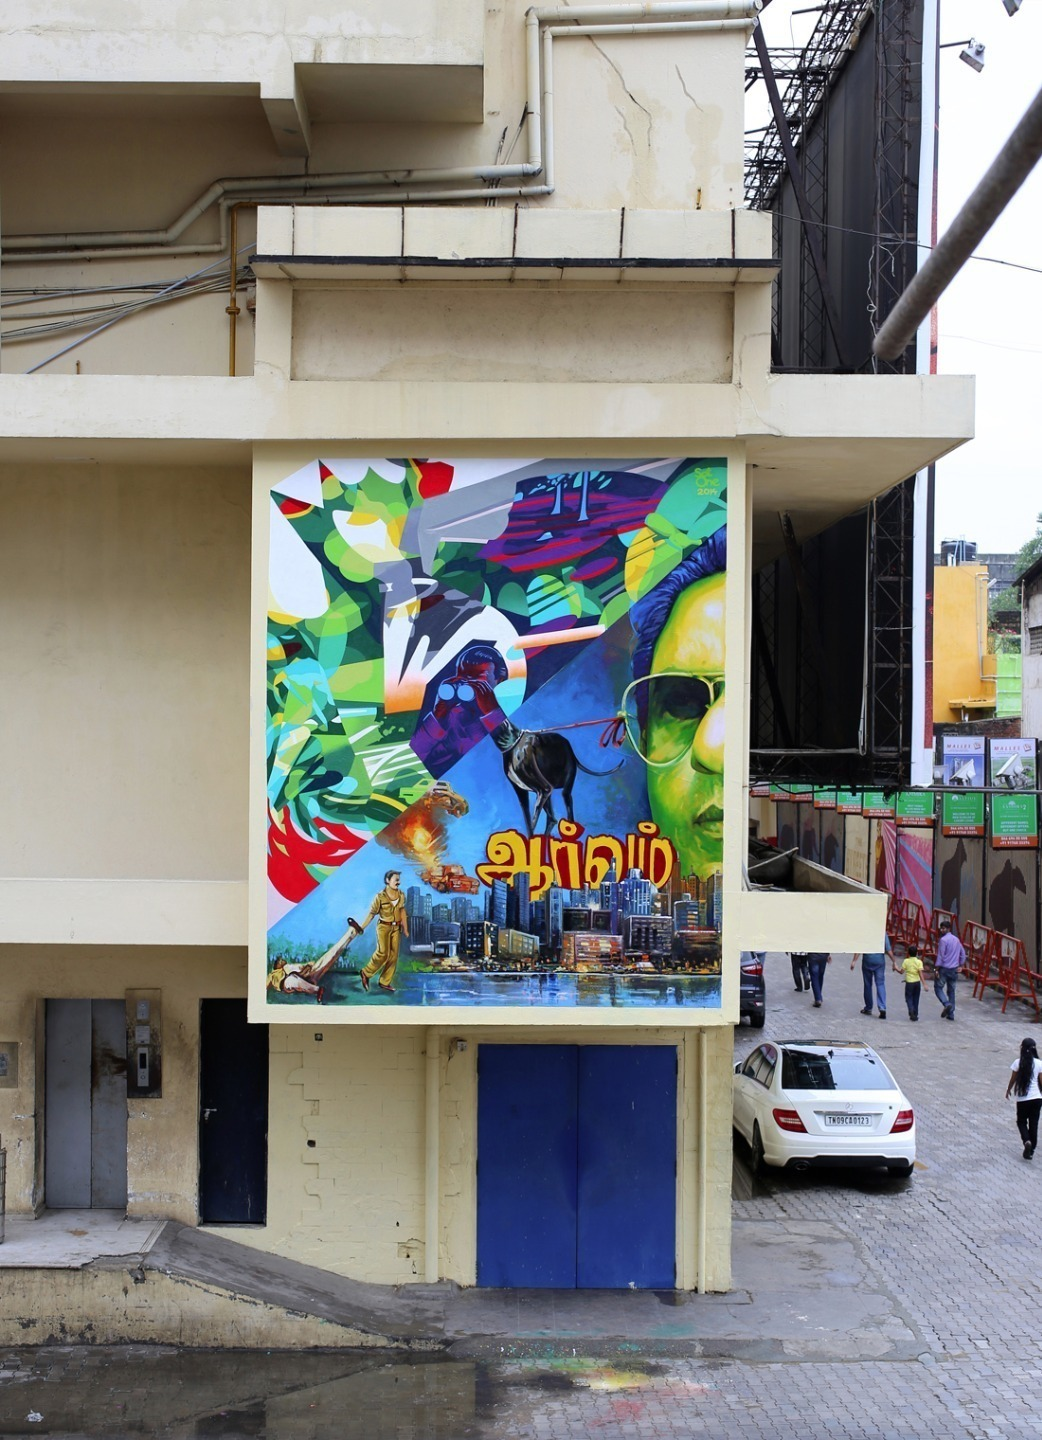 satone-a-series-of-murals-in-chennai-india-03